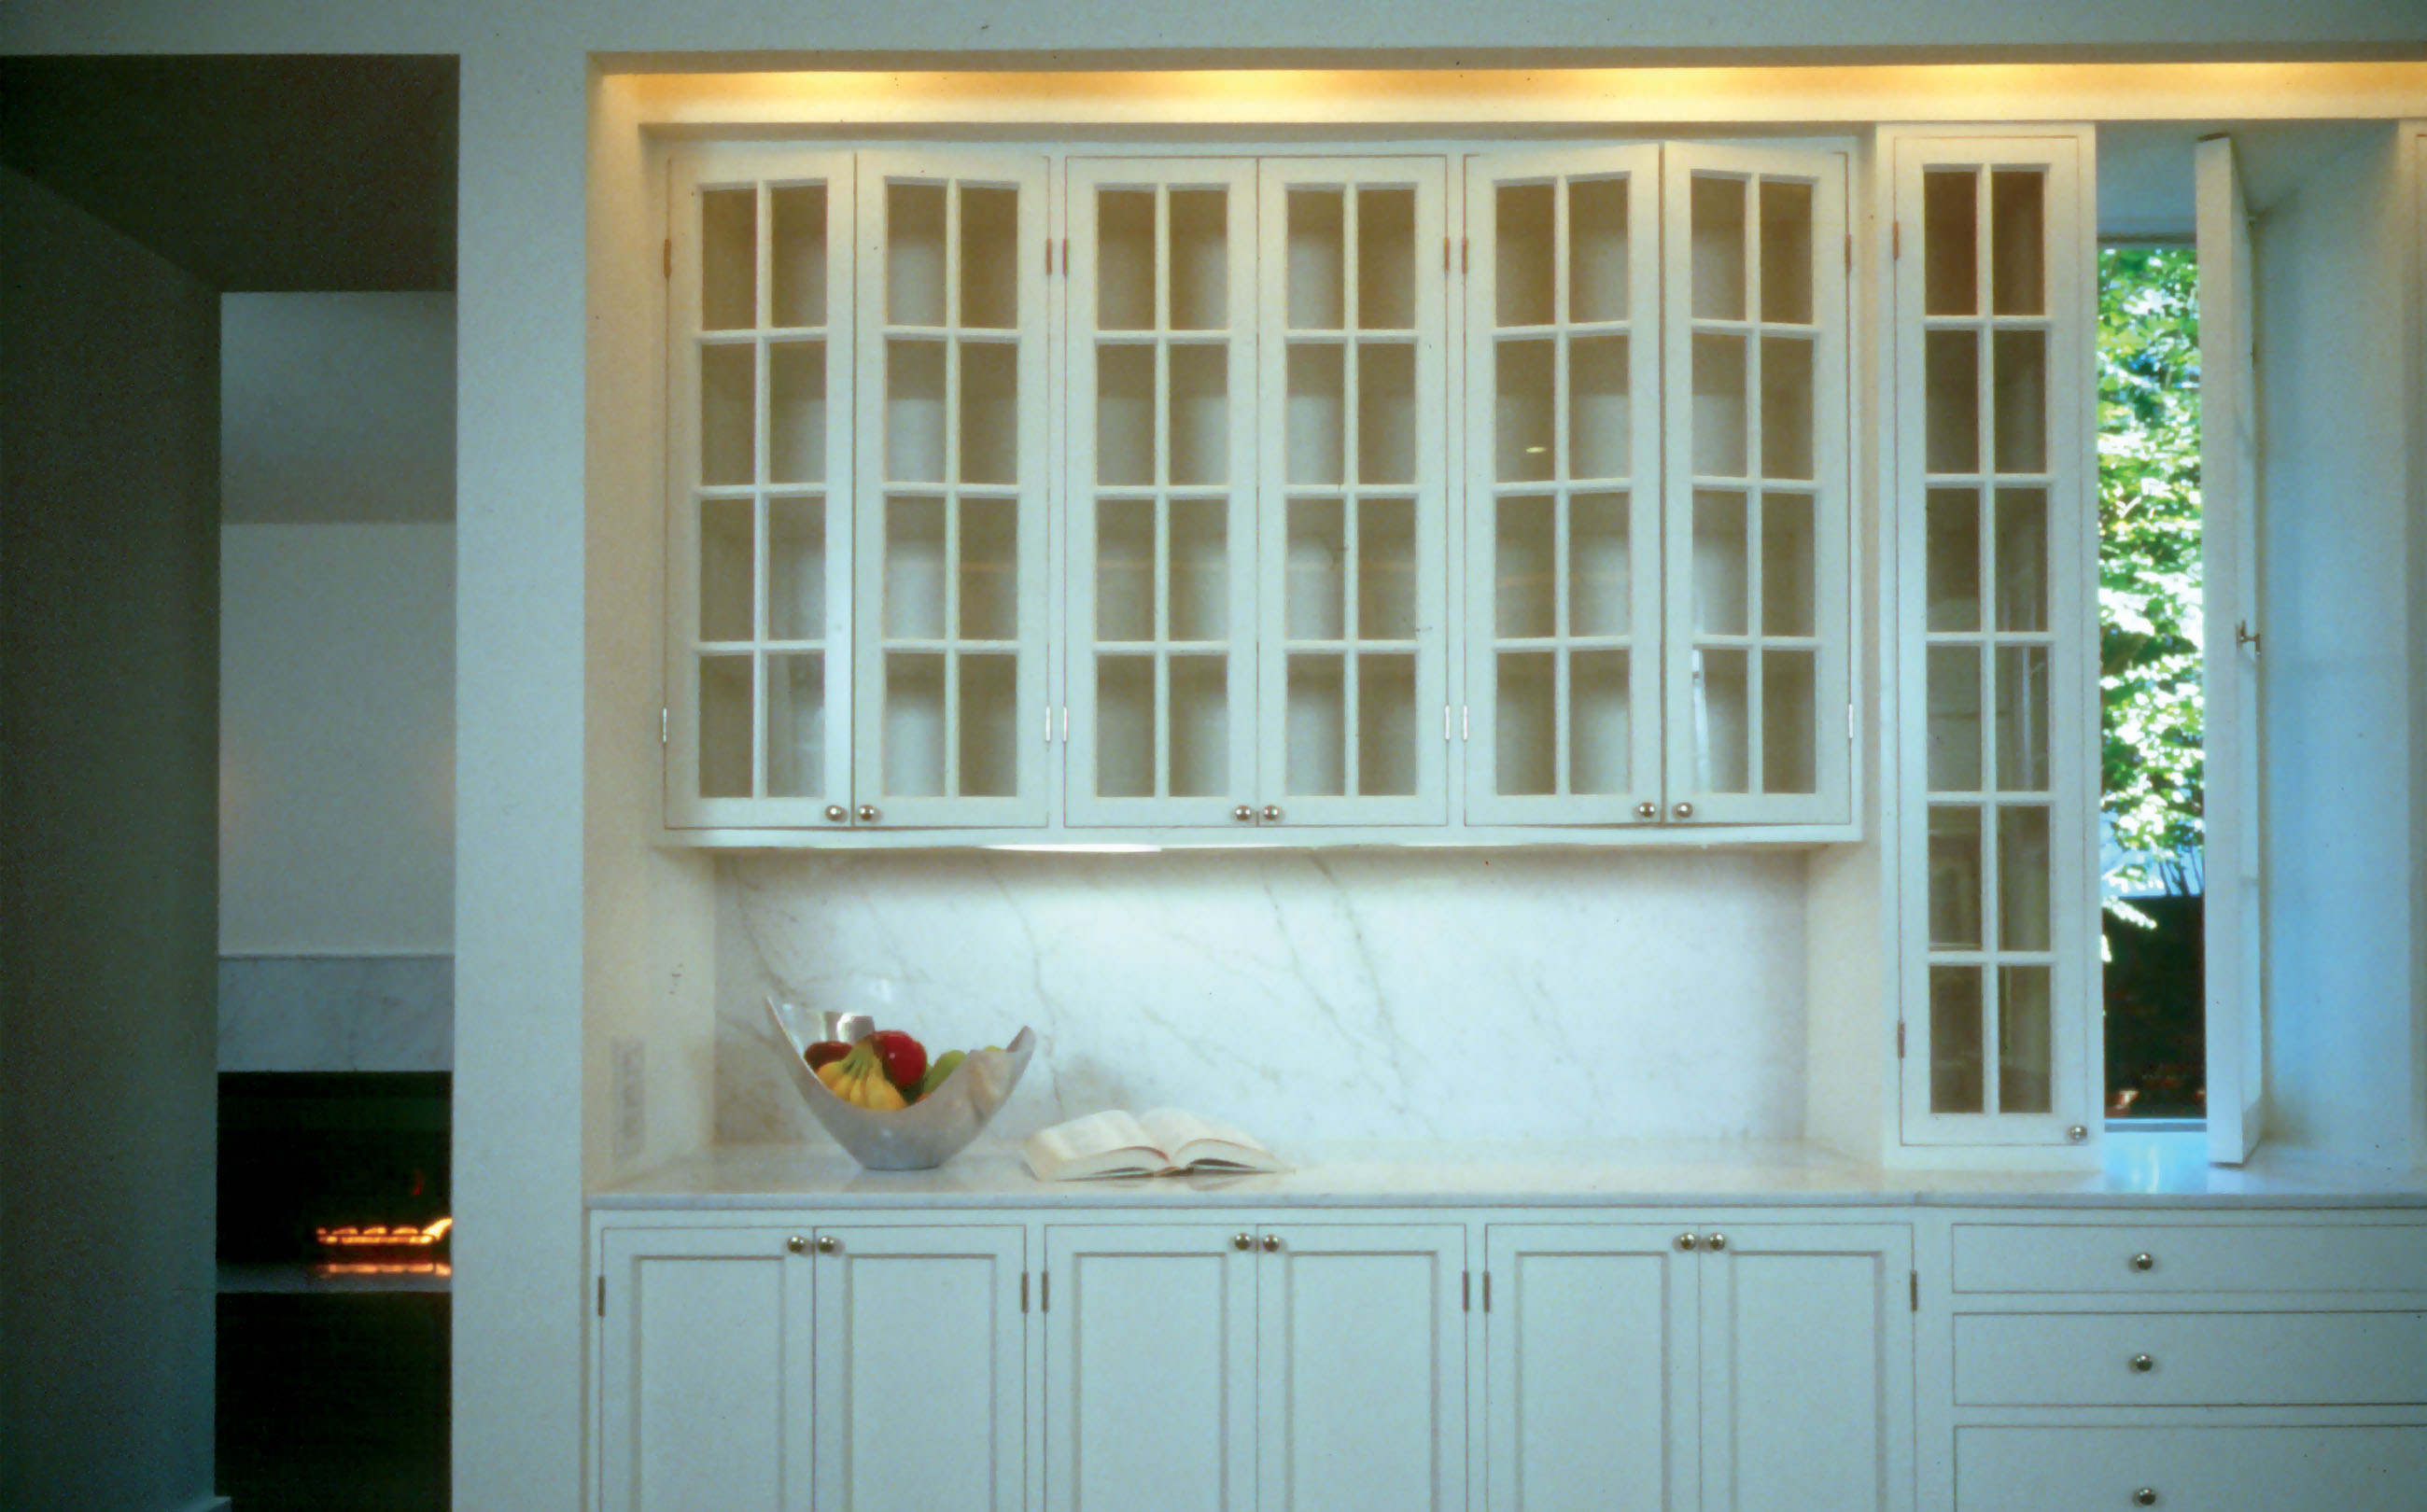 Peach Blossom Square Kitchen – BAUER ASKEW Architecture | Design ...